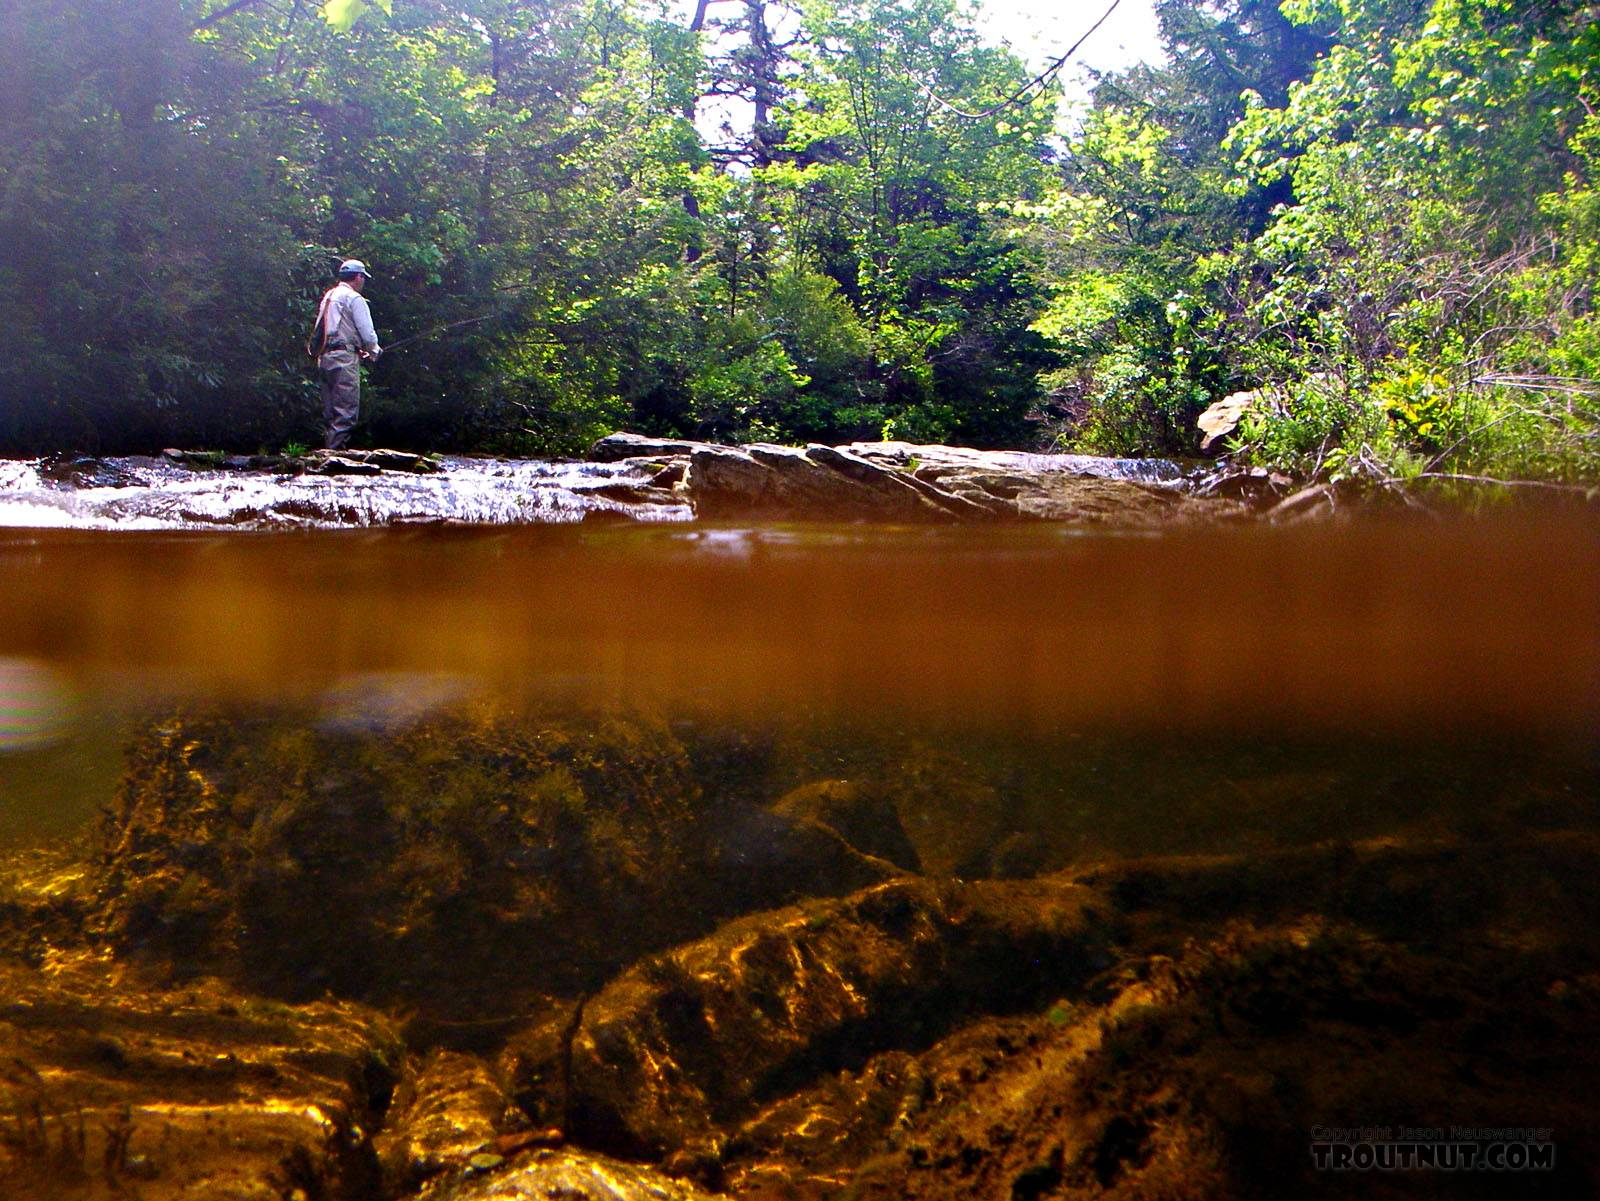 This above/below shot has Gonzo fishing on top and a beautiful tea-stained little Pocono stream on the bottom. From Mystery Creek # 42 in Pennsylvania.